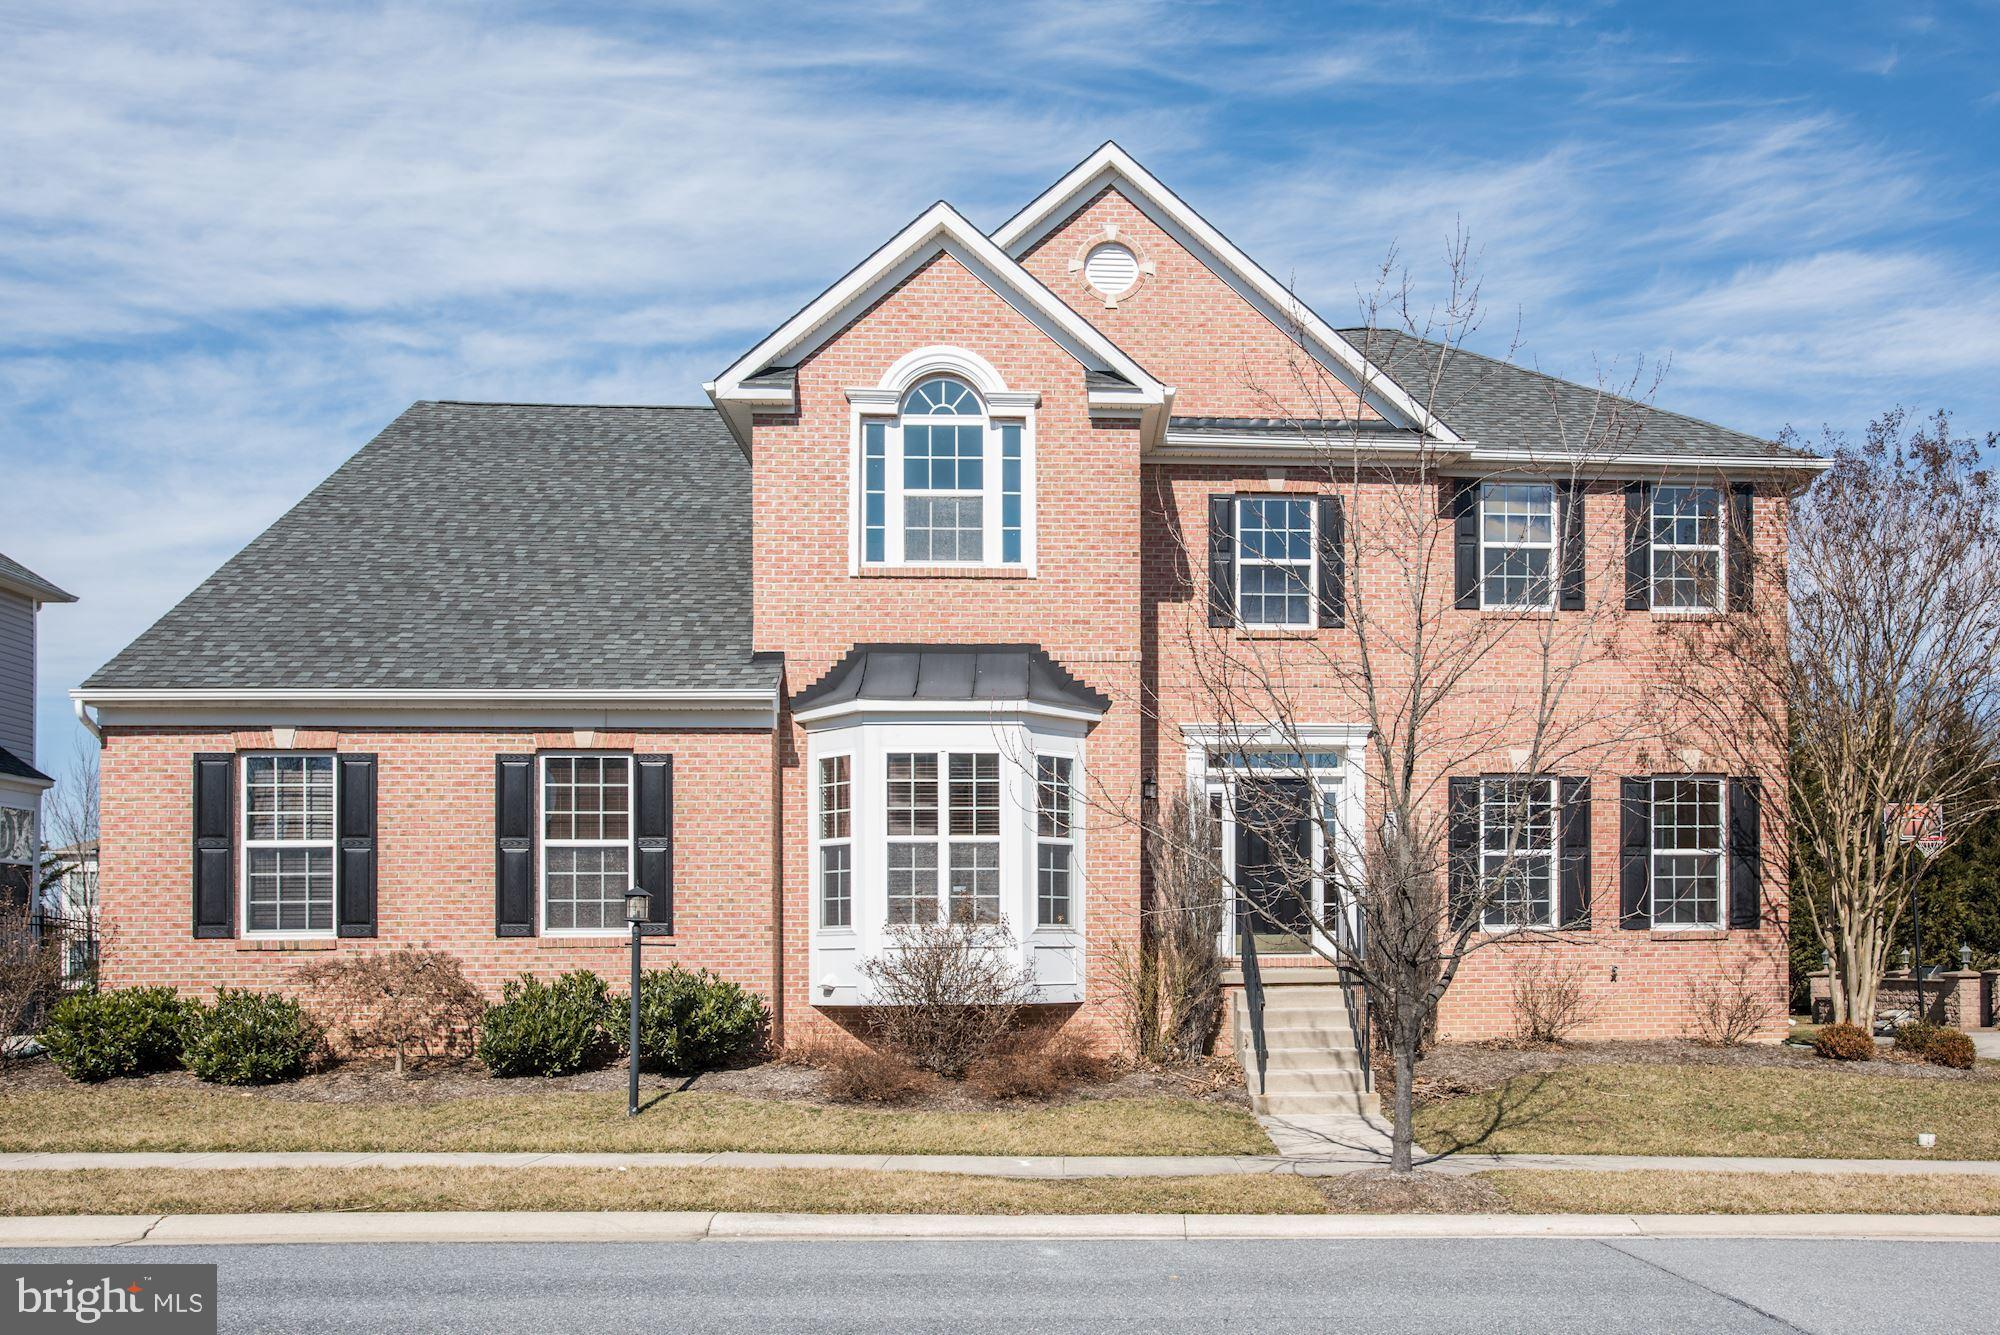 5108 MORNING DOVE WAY, PERRY HALL, MD 21128